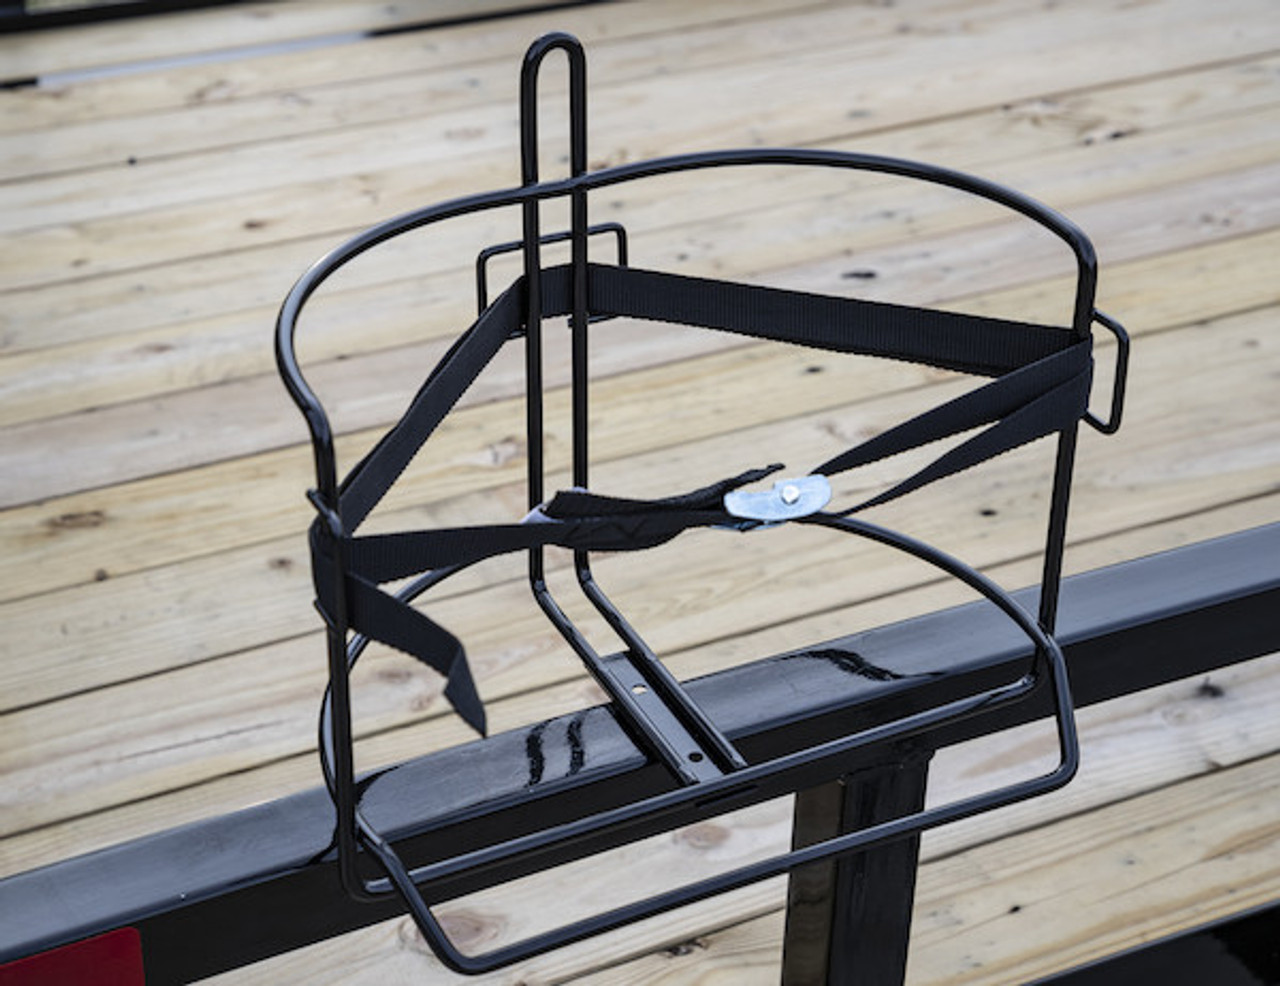 Buyers 5201009  10 Gallon Wire Form Water Cooler Rack for Trailers Picture # 3